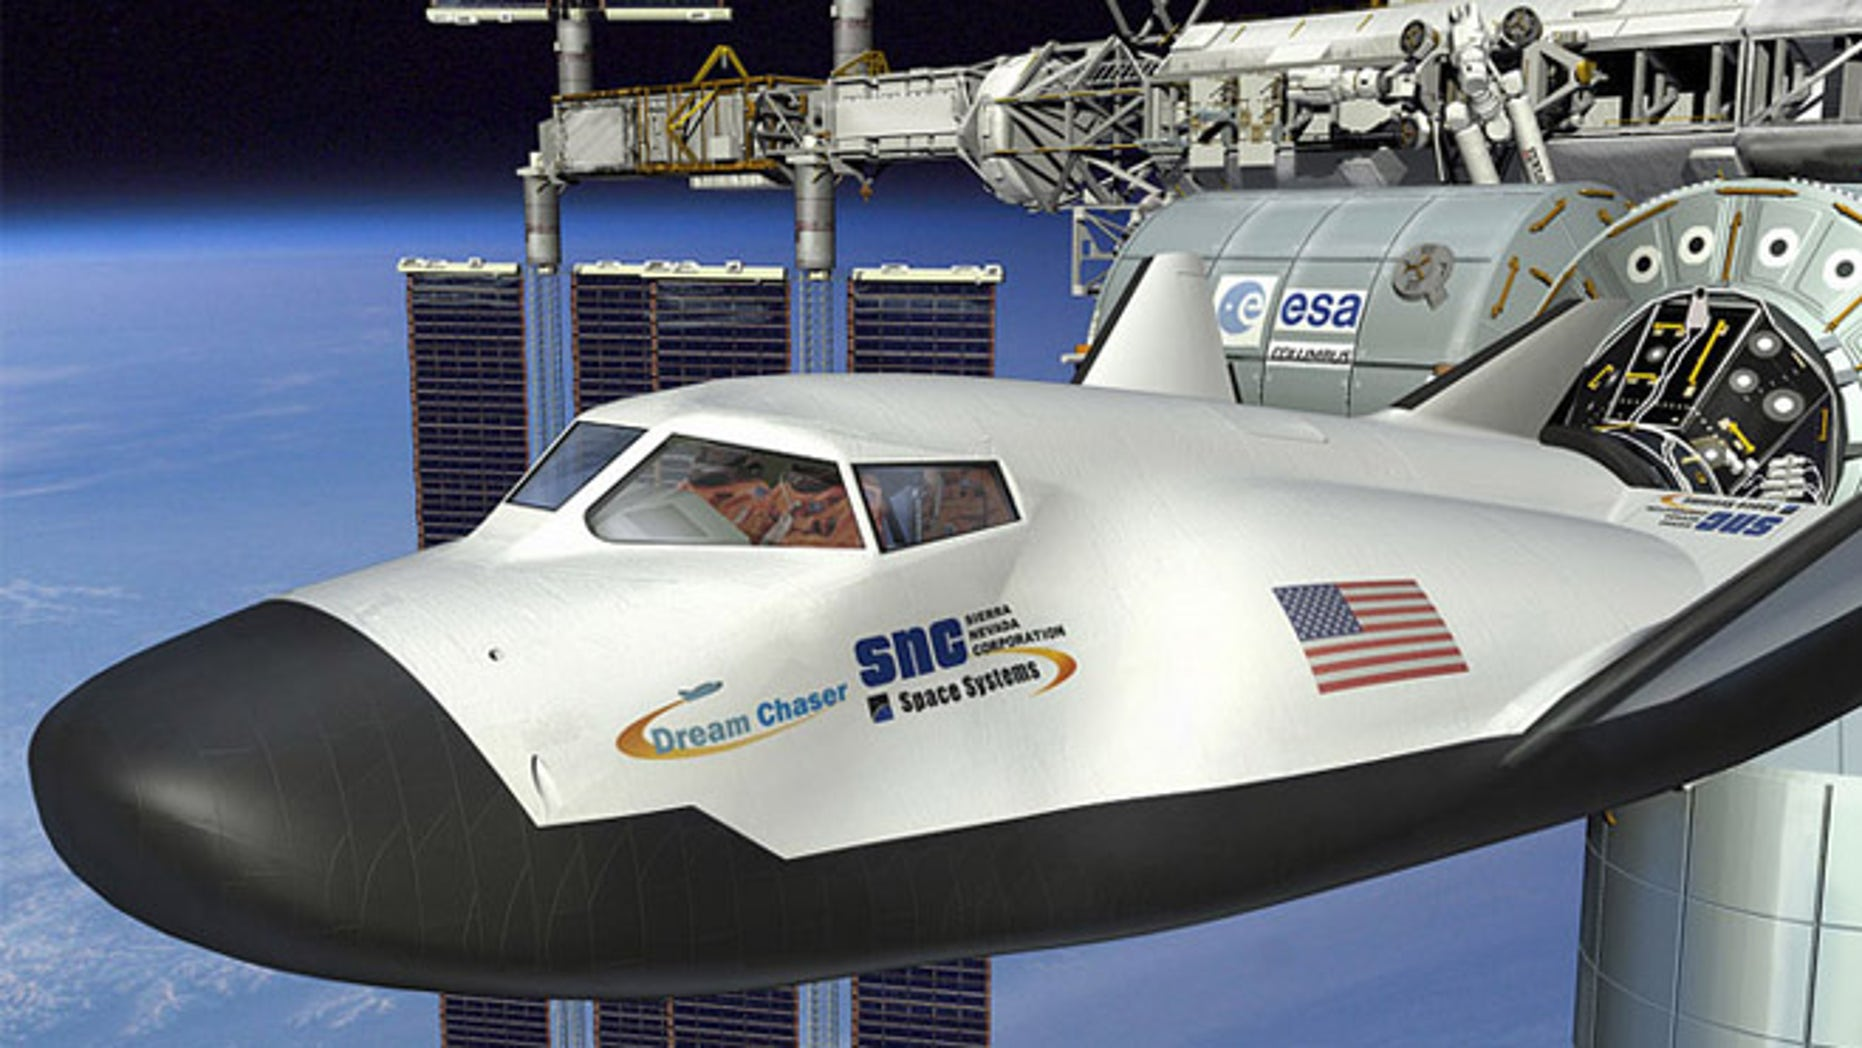 The Dream Chaser, designed by Sierra Nevada, one of several firms vying to build space taxis for NASA.